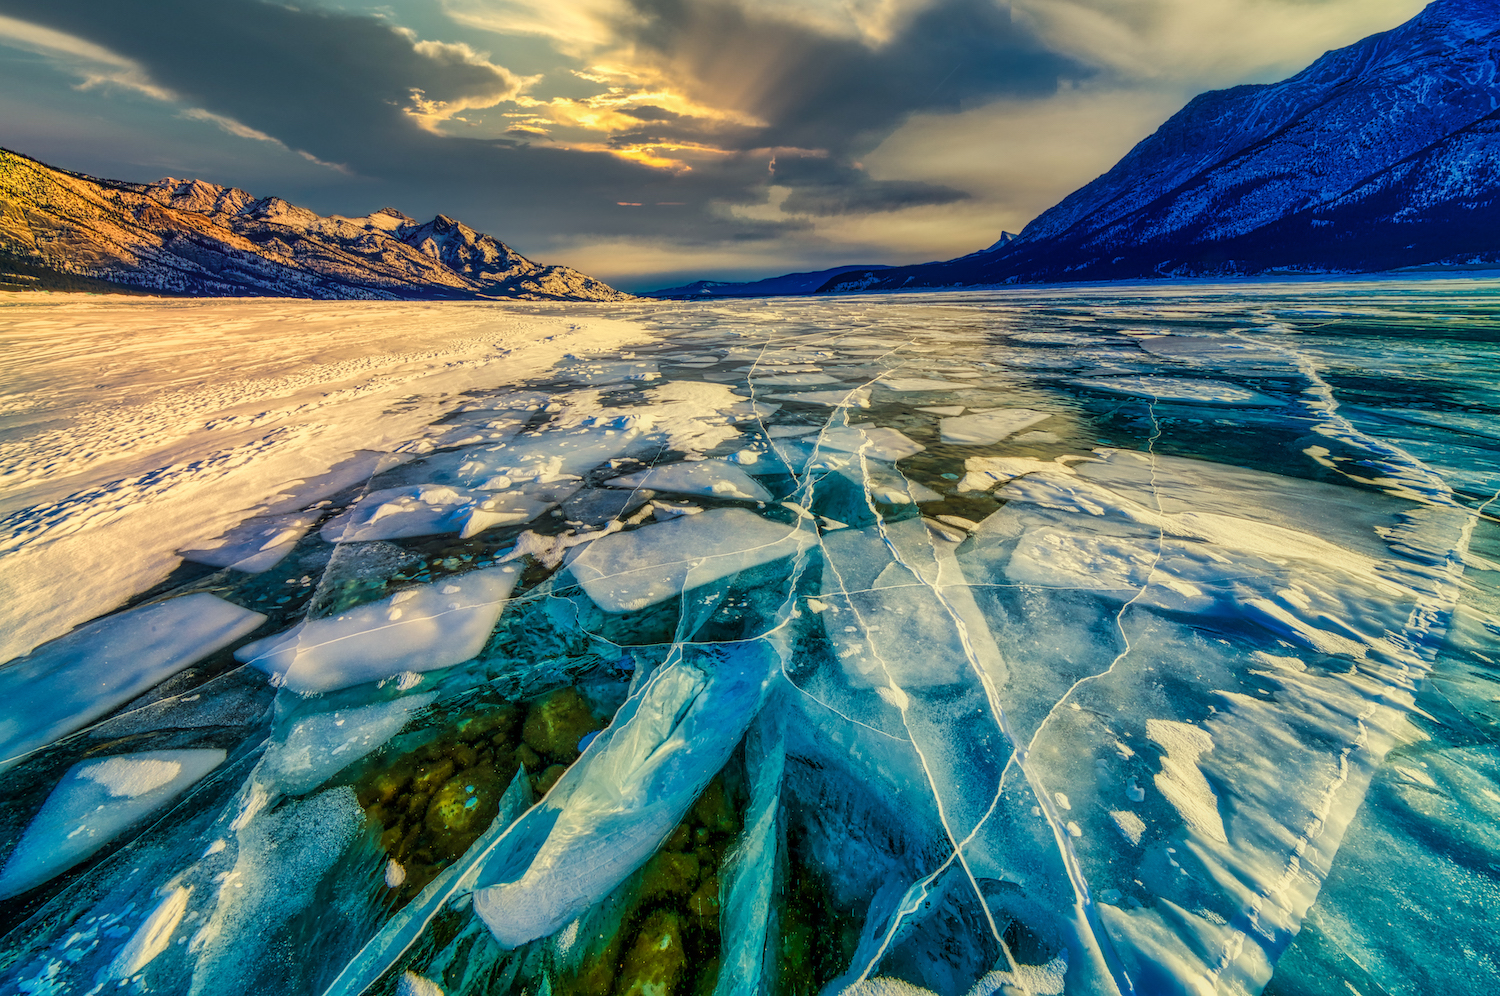 Abraham Lake in the Canadian Rockies of Alberta comes alive in the long and cold winter with staggering beauty.